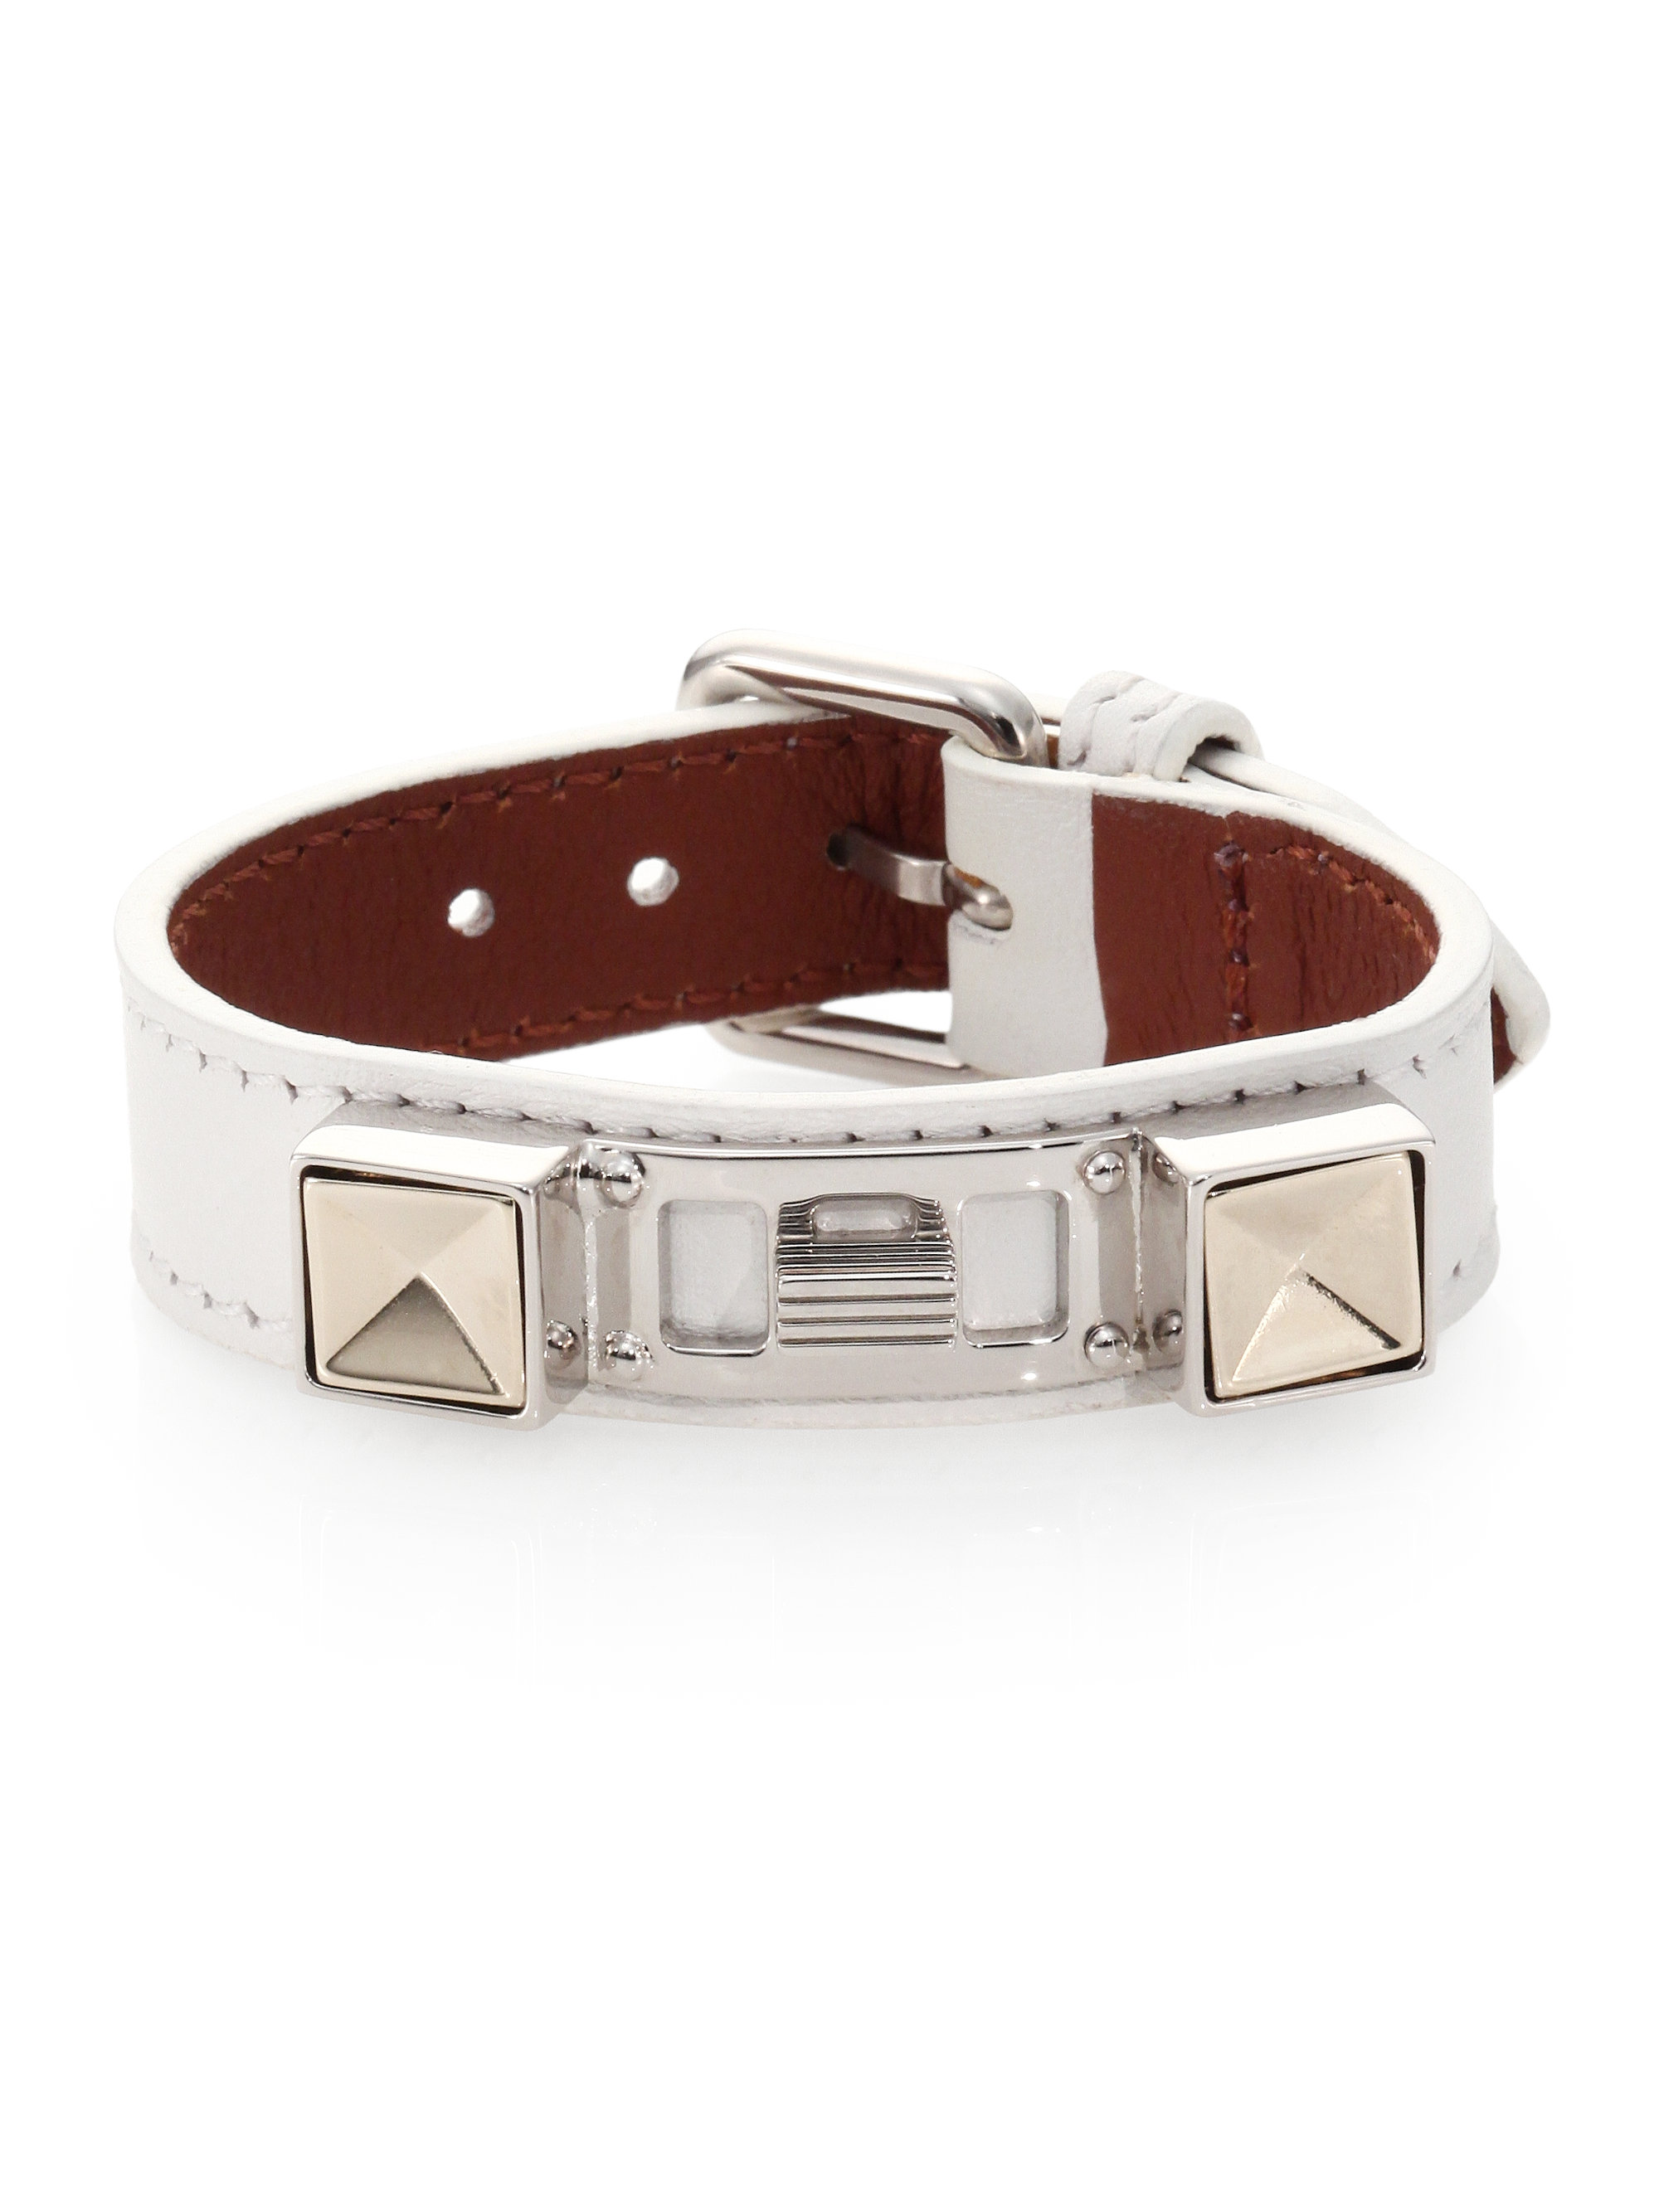 Proenza schouler Ps11 Small Leather Bracelet in White